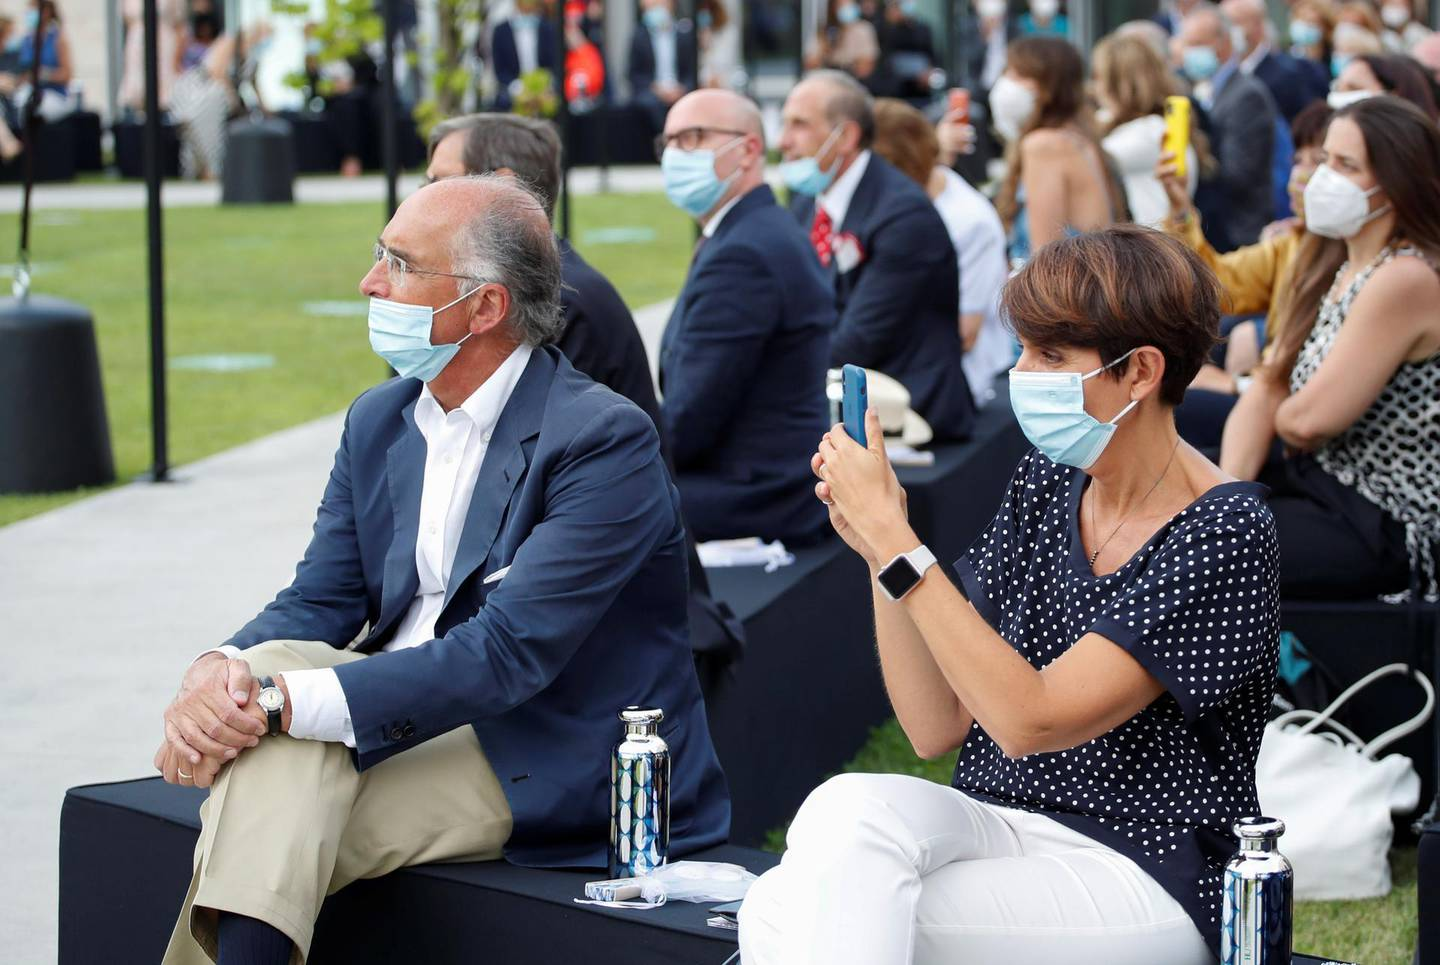 People wearing protective face masks attend the Dolce & Gabbana Spring/Summer 2021 men's collection in a live-streamed show at the university campus of the Humanitas Research Foundation in one of the first physical fashion shows since the coronavirus disease (COVID-19) outbreak, during Milan Digital Fashion Week in Rozzano, south of Milan, Italy, July 15, 2020. REUTERS/Alessandro Garofalo